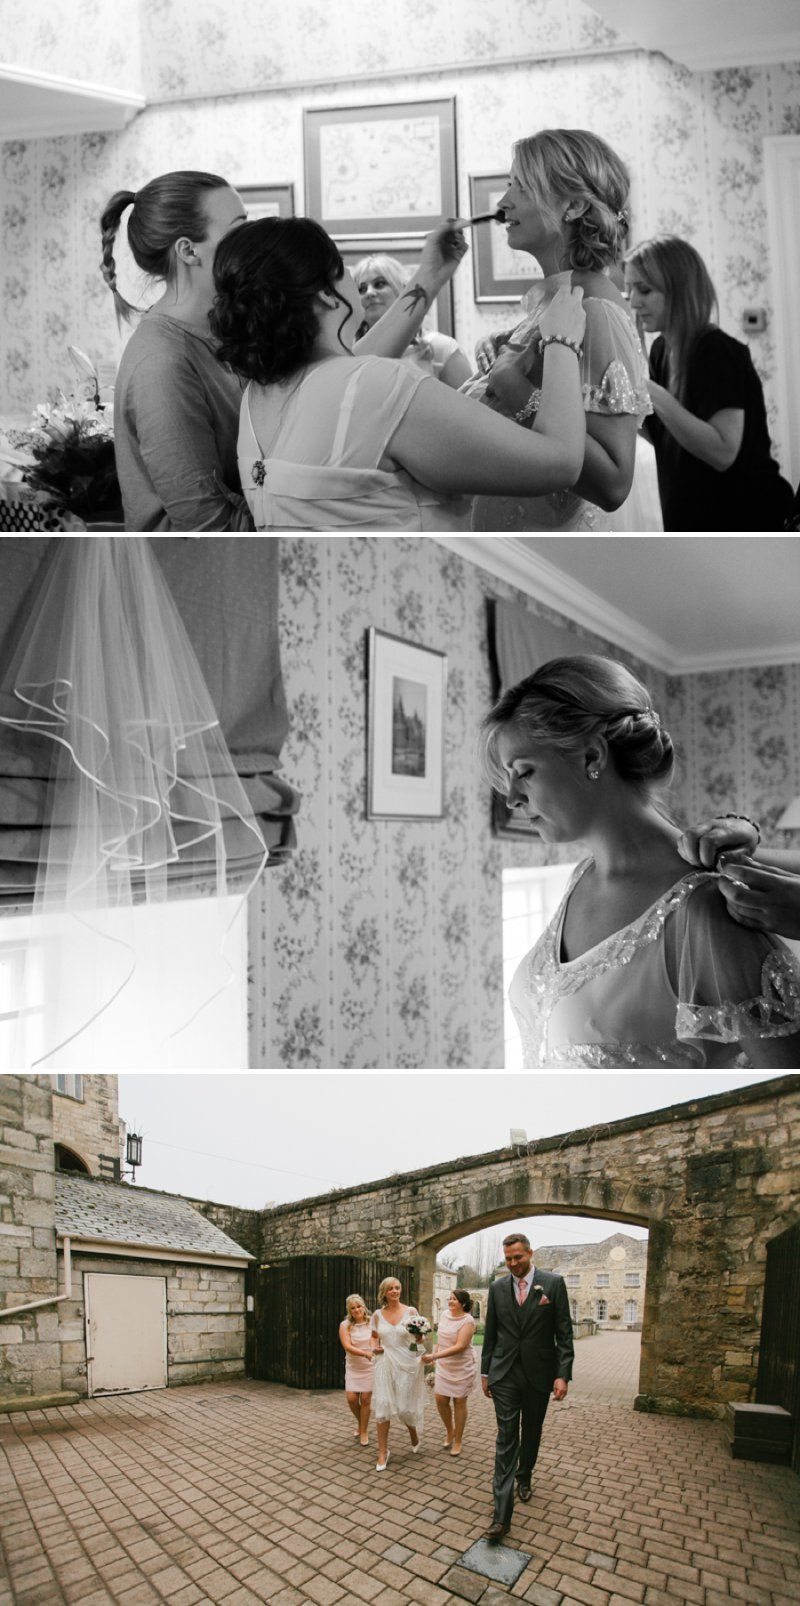 Vintage Inspired Wedding At Hazlewood Castle In Yorkshire With Bride In Foxglove By Jenny Packham And Bridesmaids In Pink Dresses From Coast With A Firework Display 2